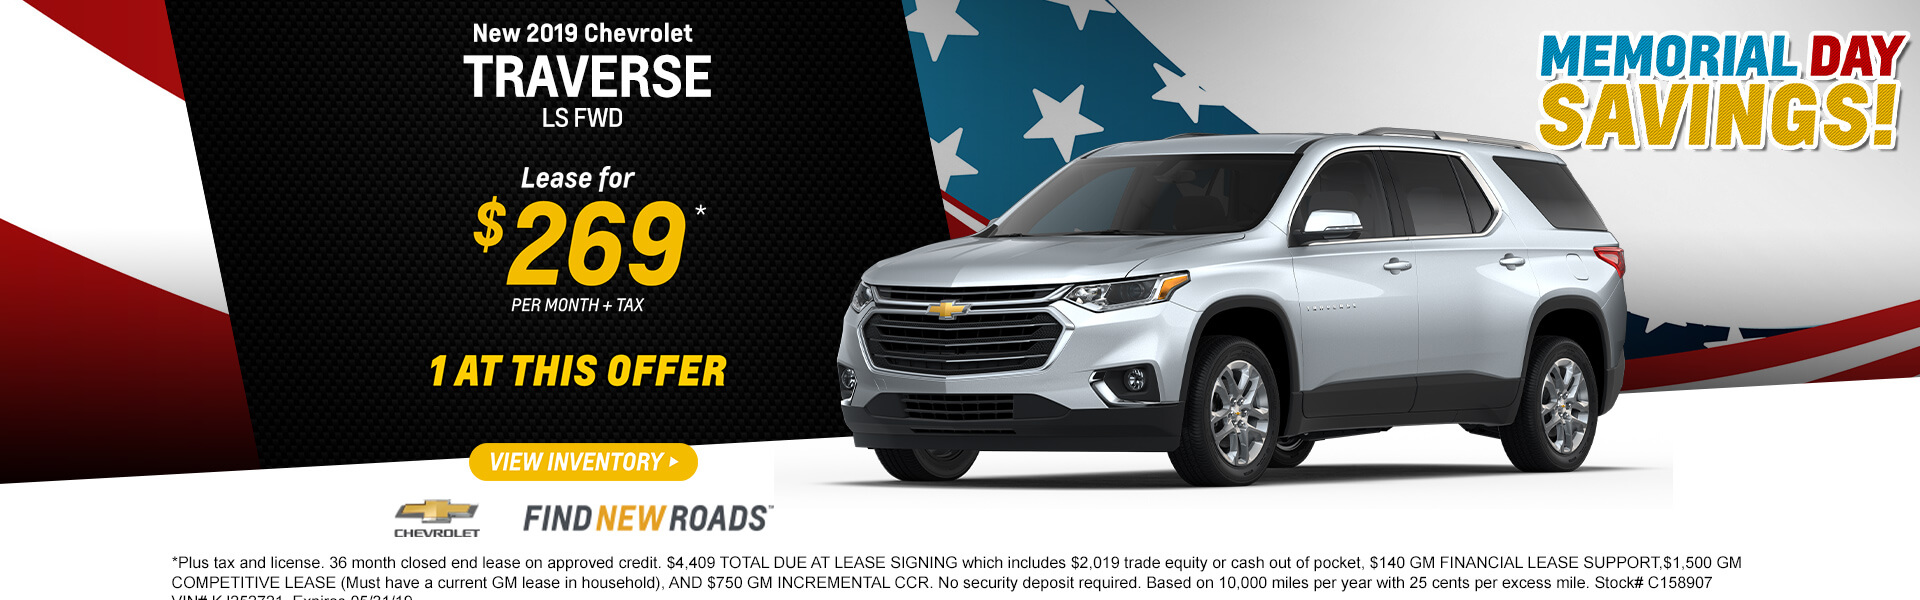 2019 CHEVROLET TRAVERSE LS FWD Lease $269 per month. Plus tax and license. 36 month closed end lease on approved credit. $4,409 TOTAL DUE AT LEASE SIGNING which includes $2,019 trade equity or cash out of pocket, $140 GM FINANCIAL LEASE SUPPORT,$1,500 GM COMPETITIVE LEASE (Must have a current GM lease in household), AND $750 GM INCREMENTAL CCR. No security deposit required. Based on 10,000 miles per year with 25 cents per excess mile. Stock# C158907 VIN# KJ252721. Expires 05/31/19.